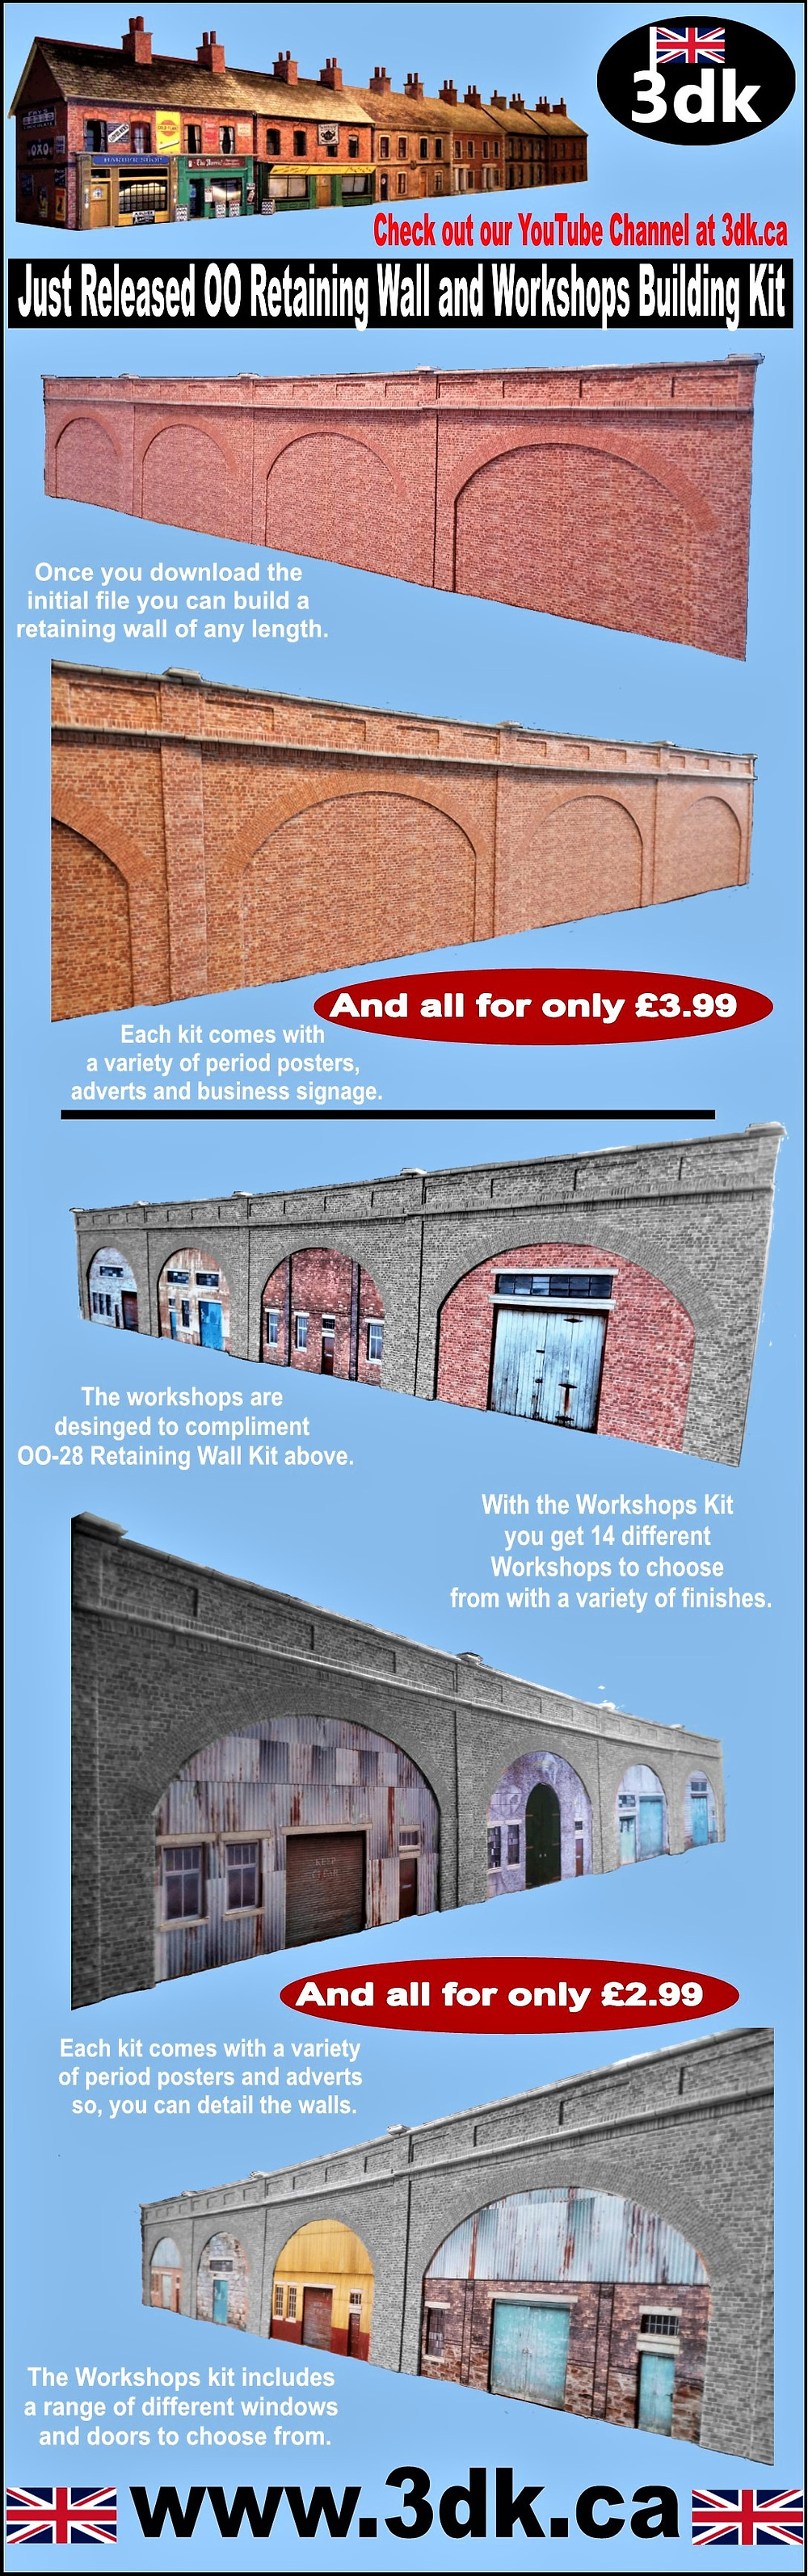 I am excited to announce the launch of two new kits to our range. The Retaining Wall kit and the Workshops kit. At only £2.99 and £3.99 these are excellent value for money and from one download you can assemble a retaining wall of any length.